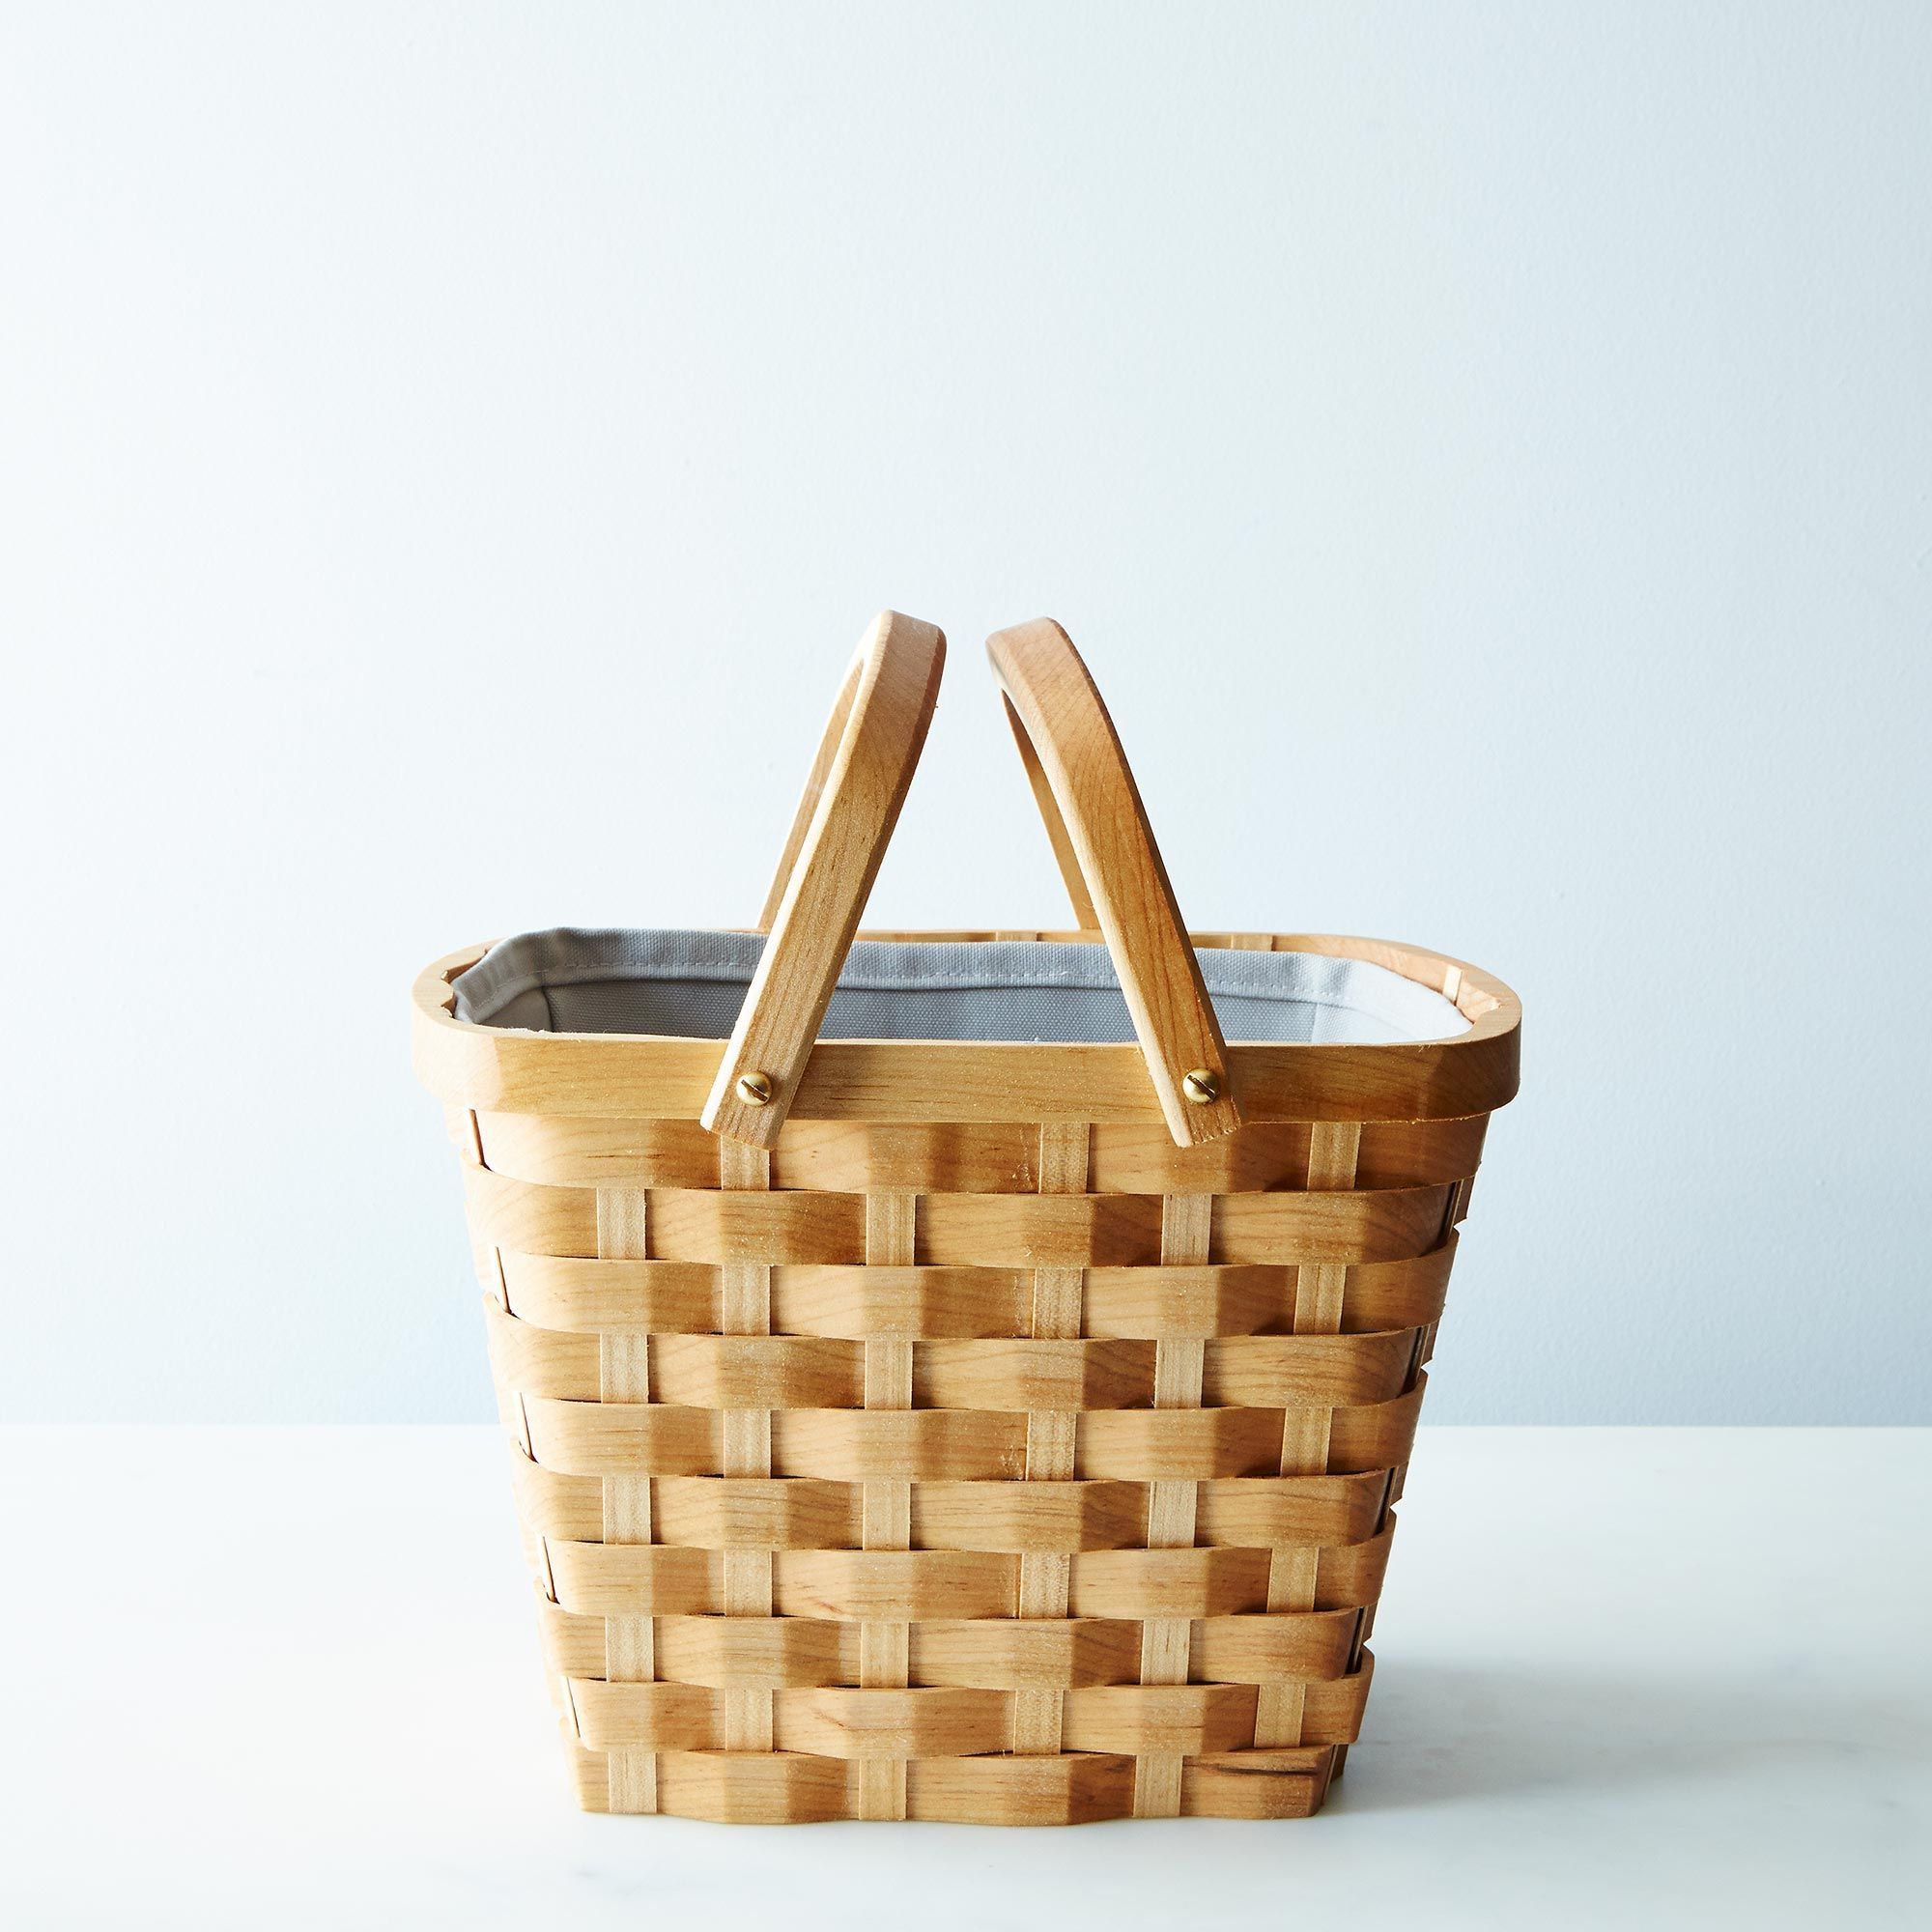 D8ad4f99 e9a2 41c8 b442 588b0ea4d590  2014 0616 baskets by debi wood carrying basket 003